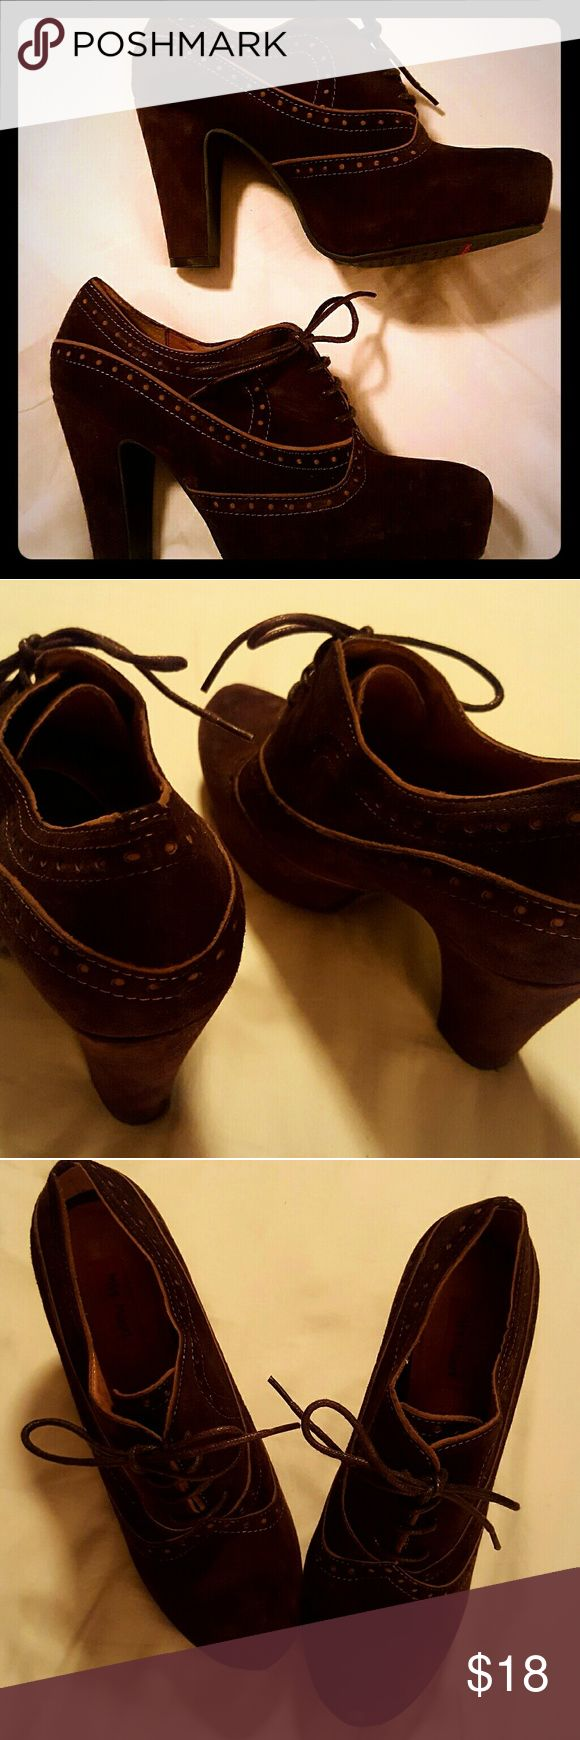 Brown suede oxfords Dark brown suede oxfords with a 4-inch platform heel. Great condition. Has a vintage feel. Comfortable and cute! Miz Mooz Shoes Platforms